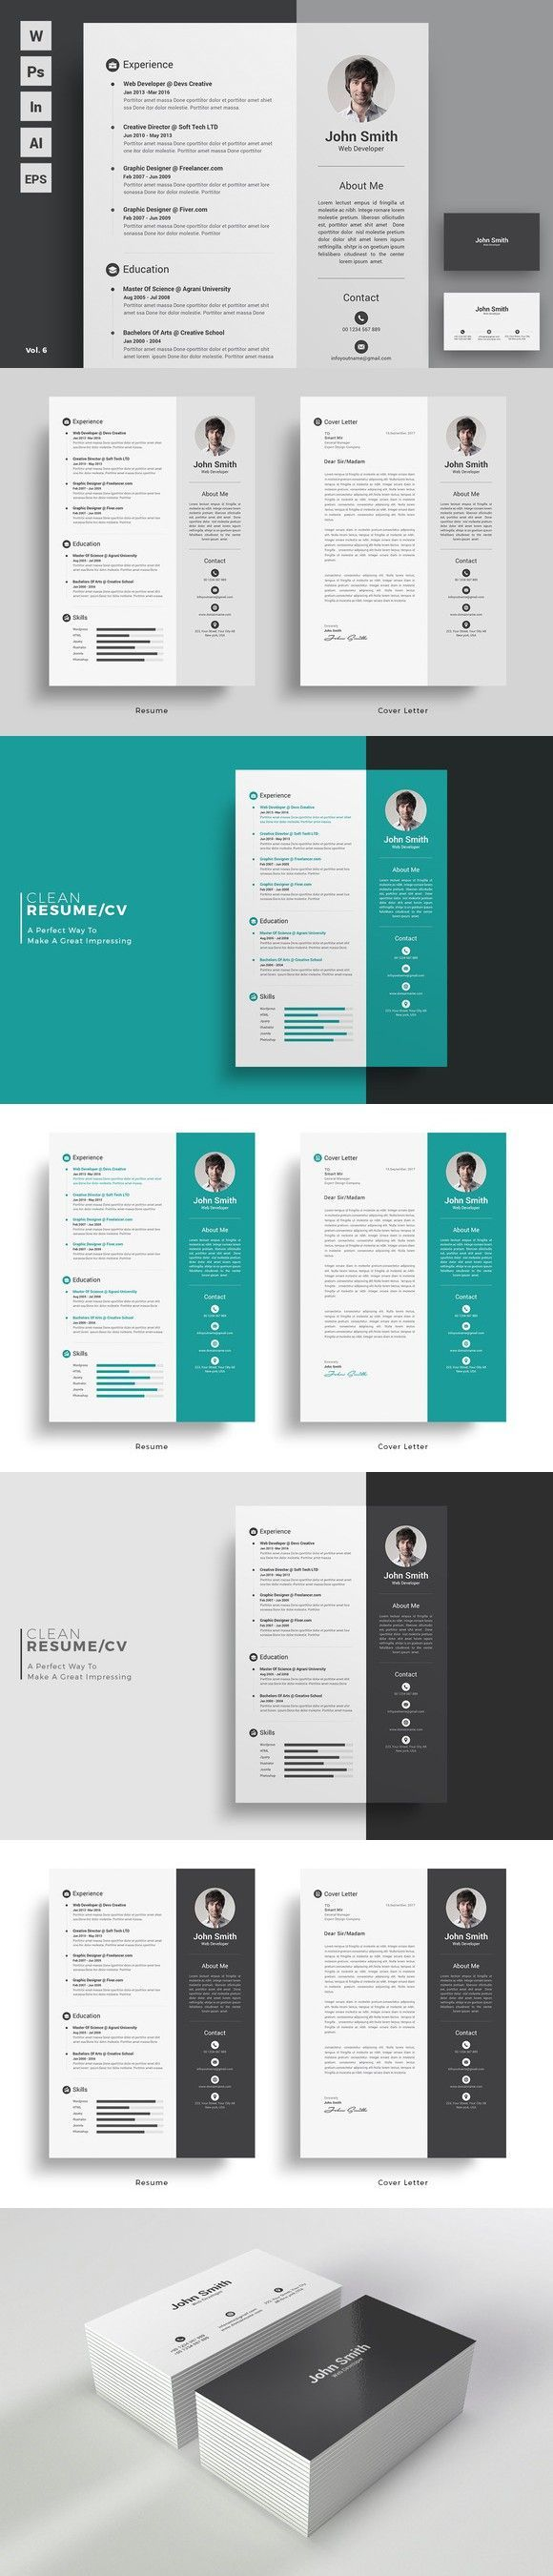 business infographic   business infographic   resume cv